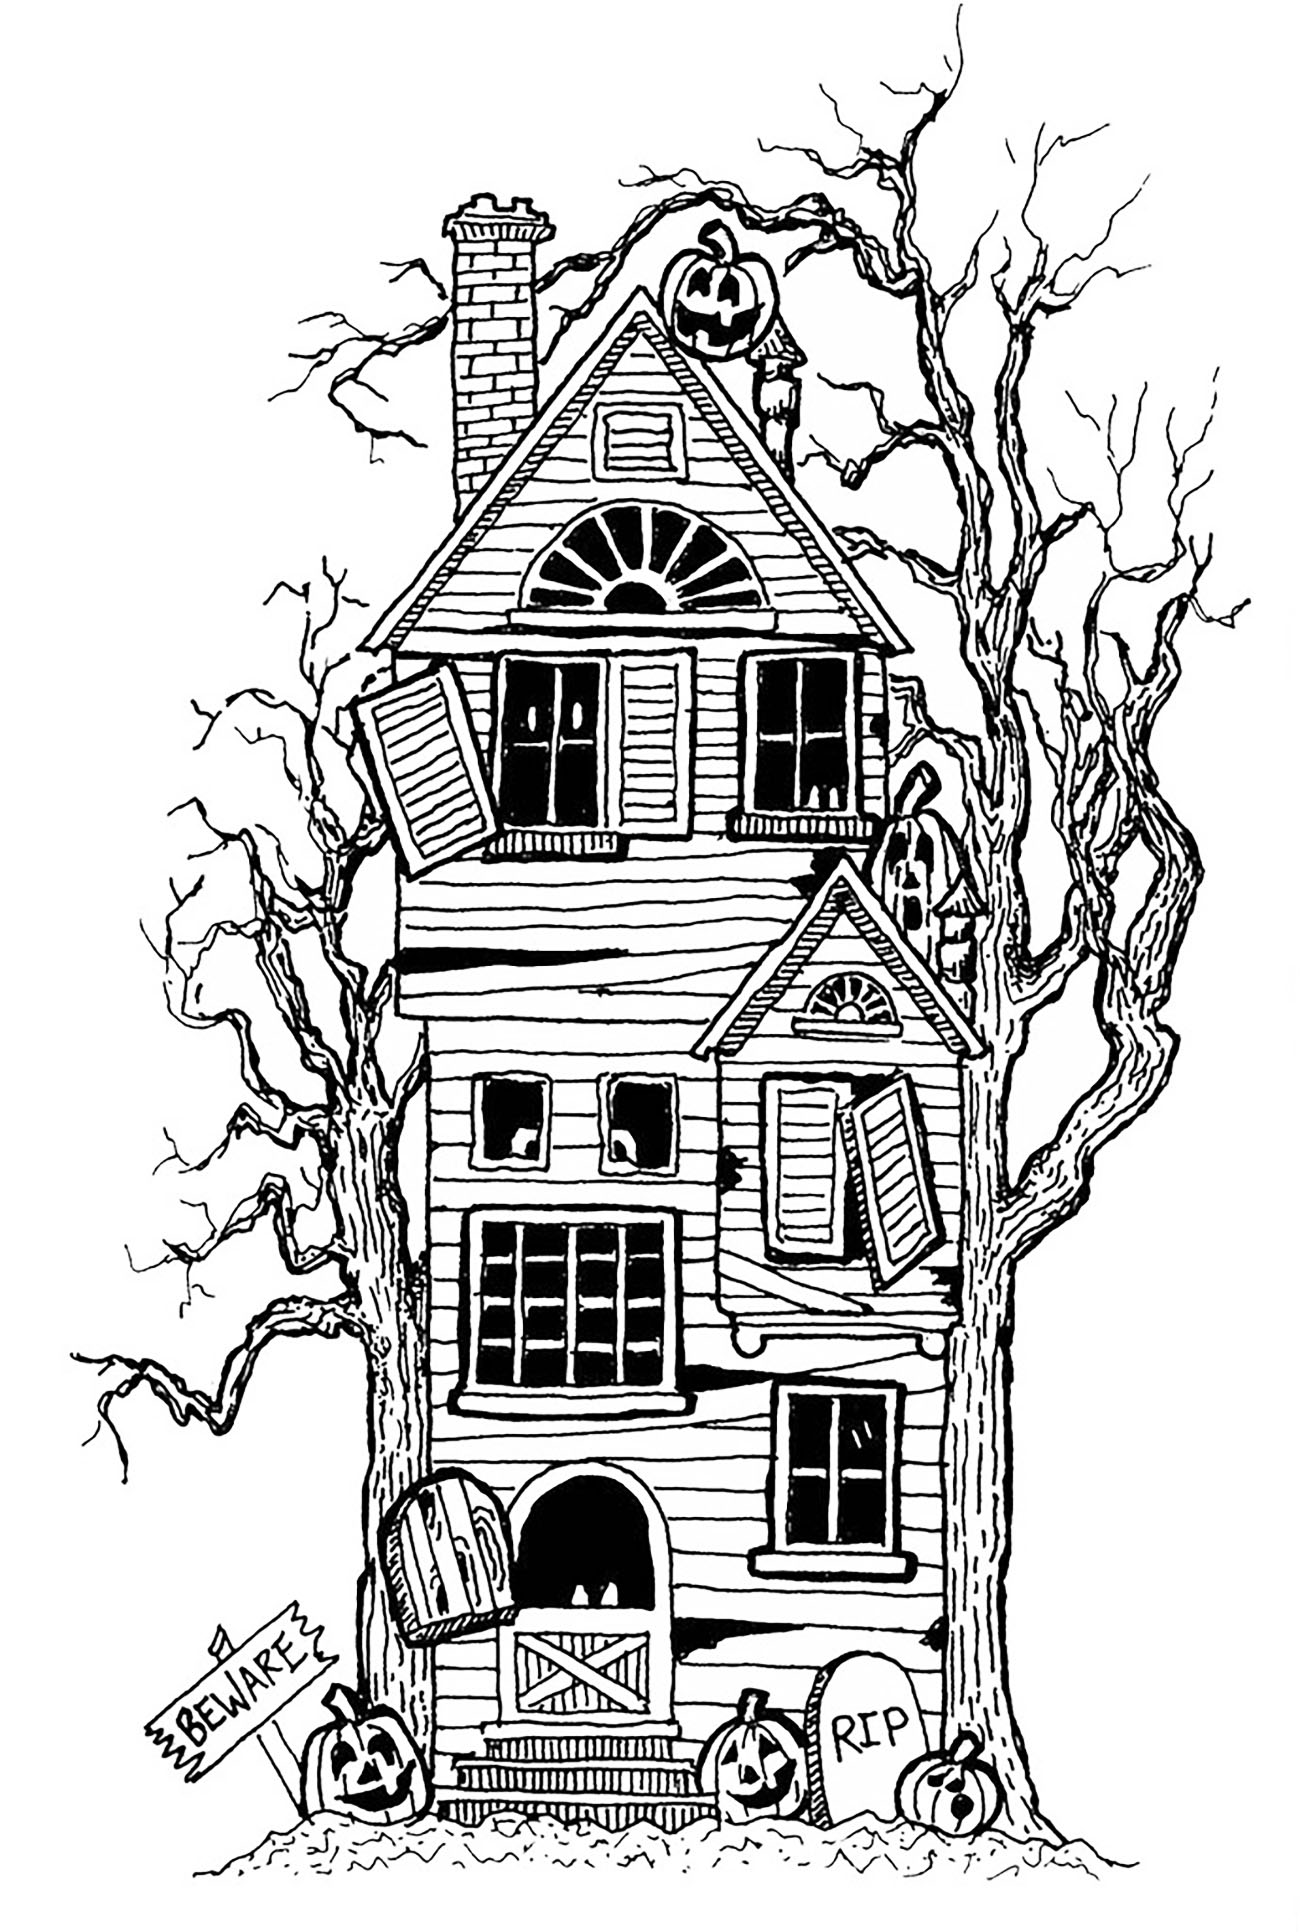 haunted house coloring page 25 free printable haunted house coloring pages for kids house coloring page haunted